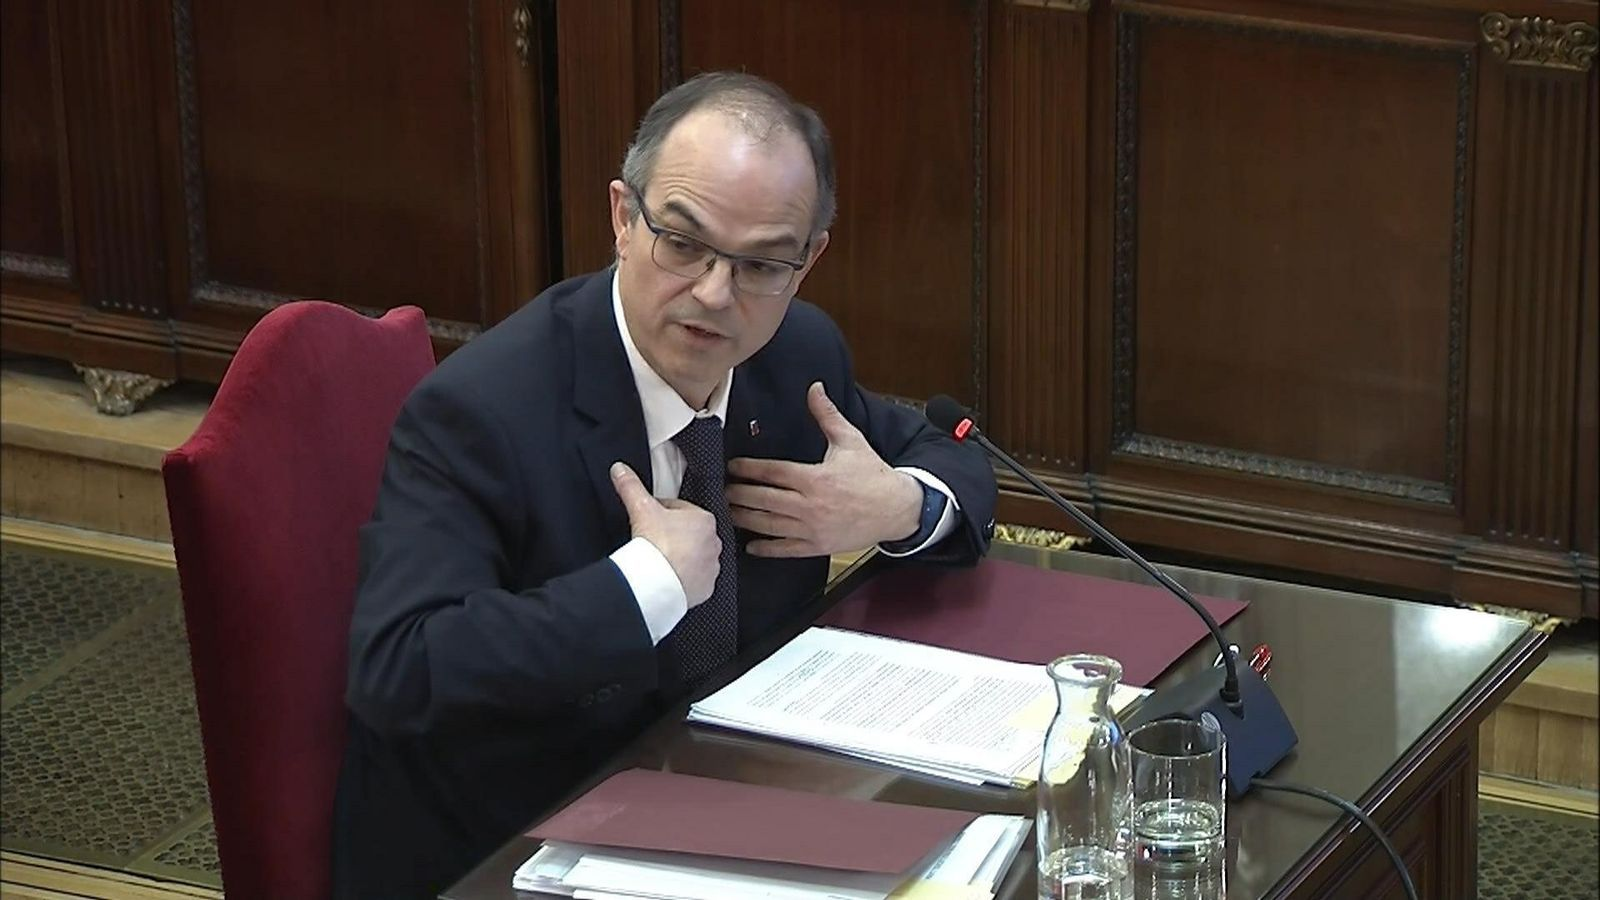 The former Catalan minister Turull's harsh replies to the Spanish public prosecutor